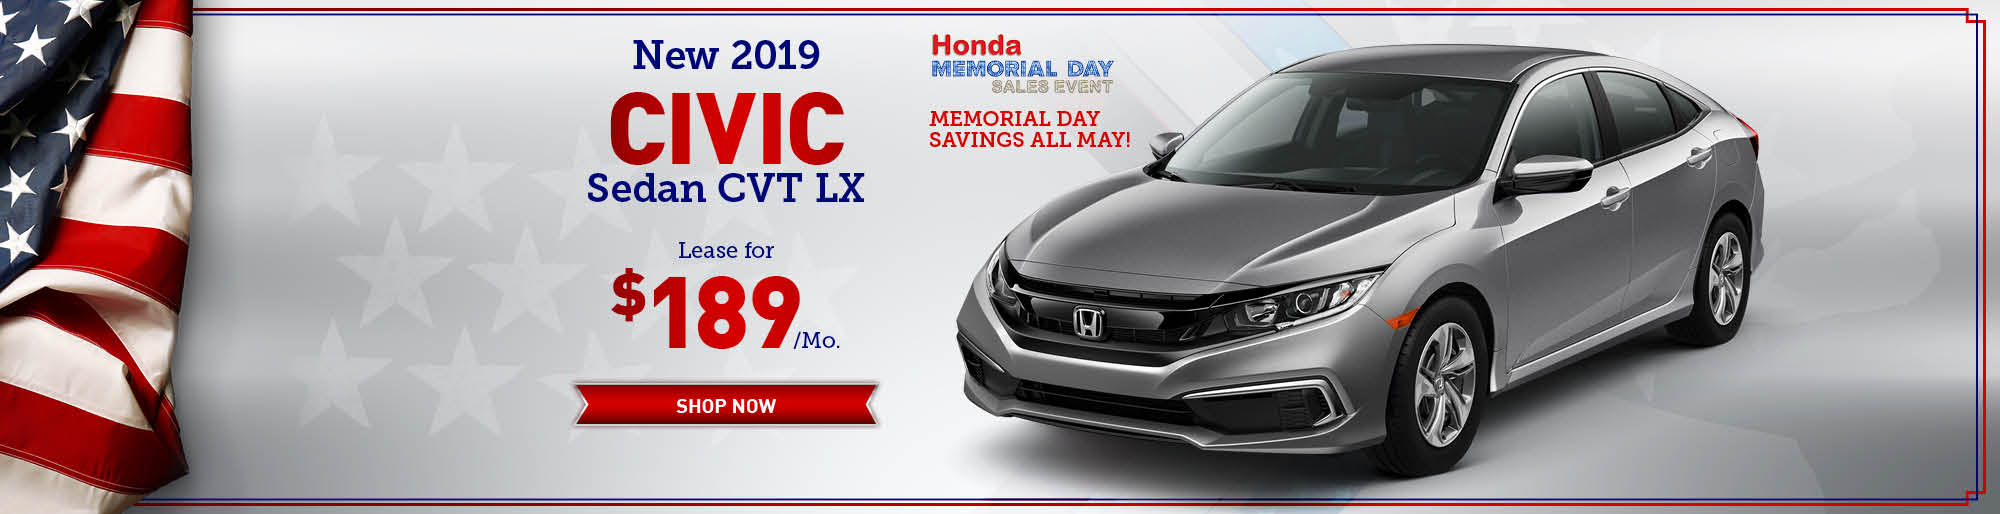 Honda Of Concord In Concord Nc Serving Charlotte New Used Car